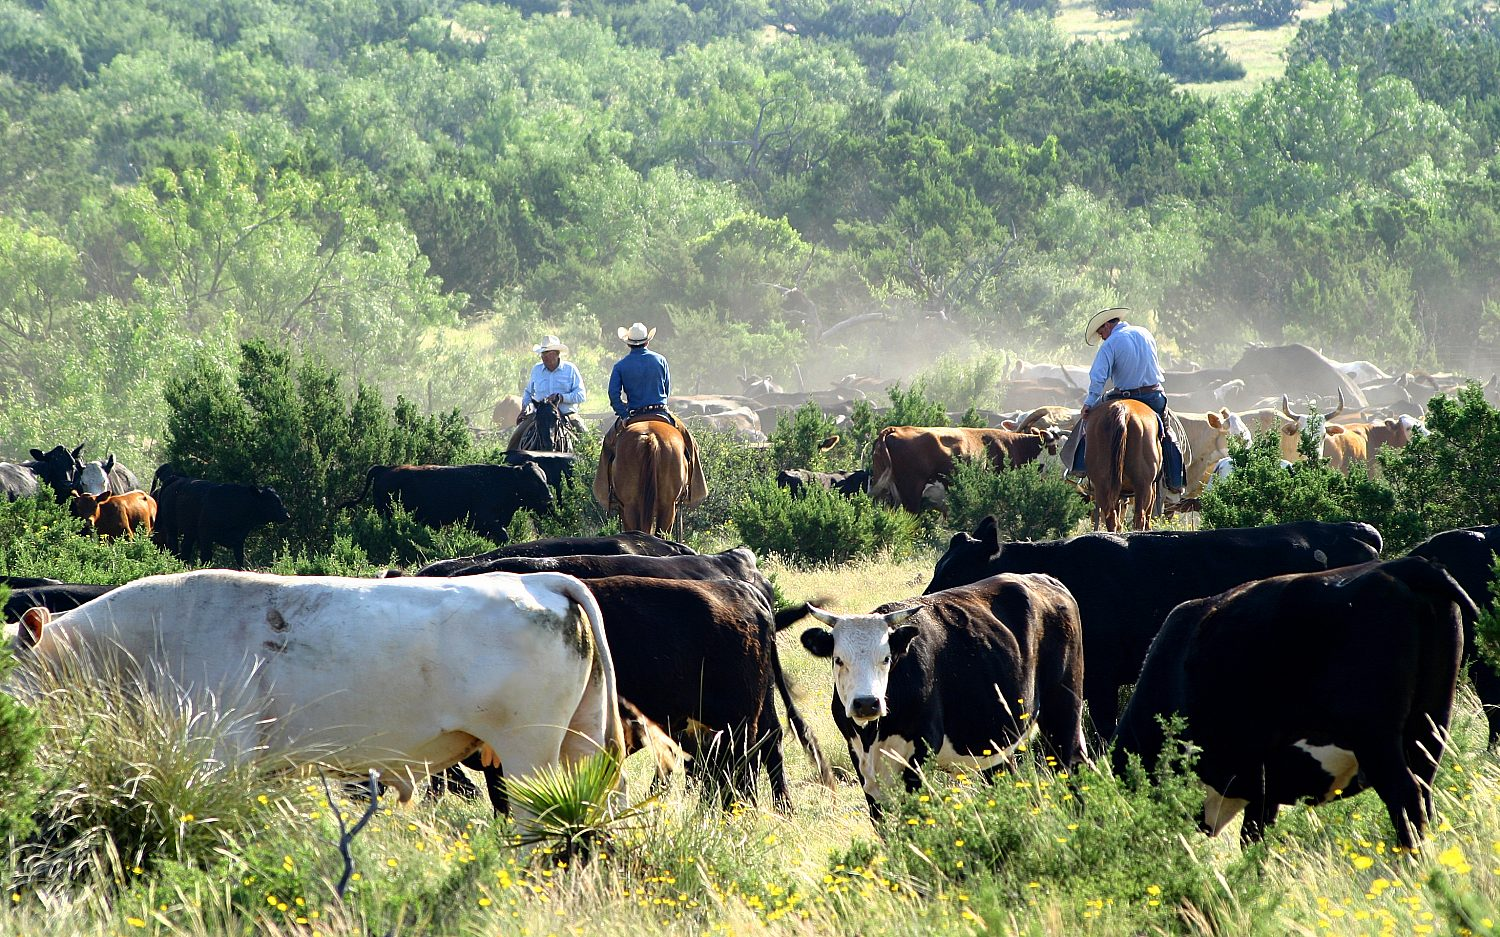 A year in the life of a ranch